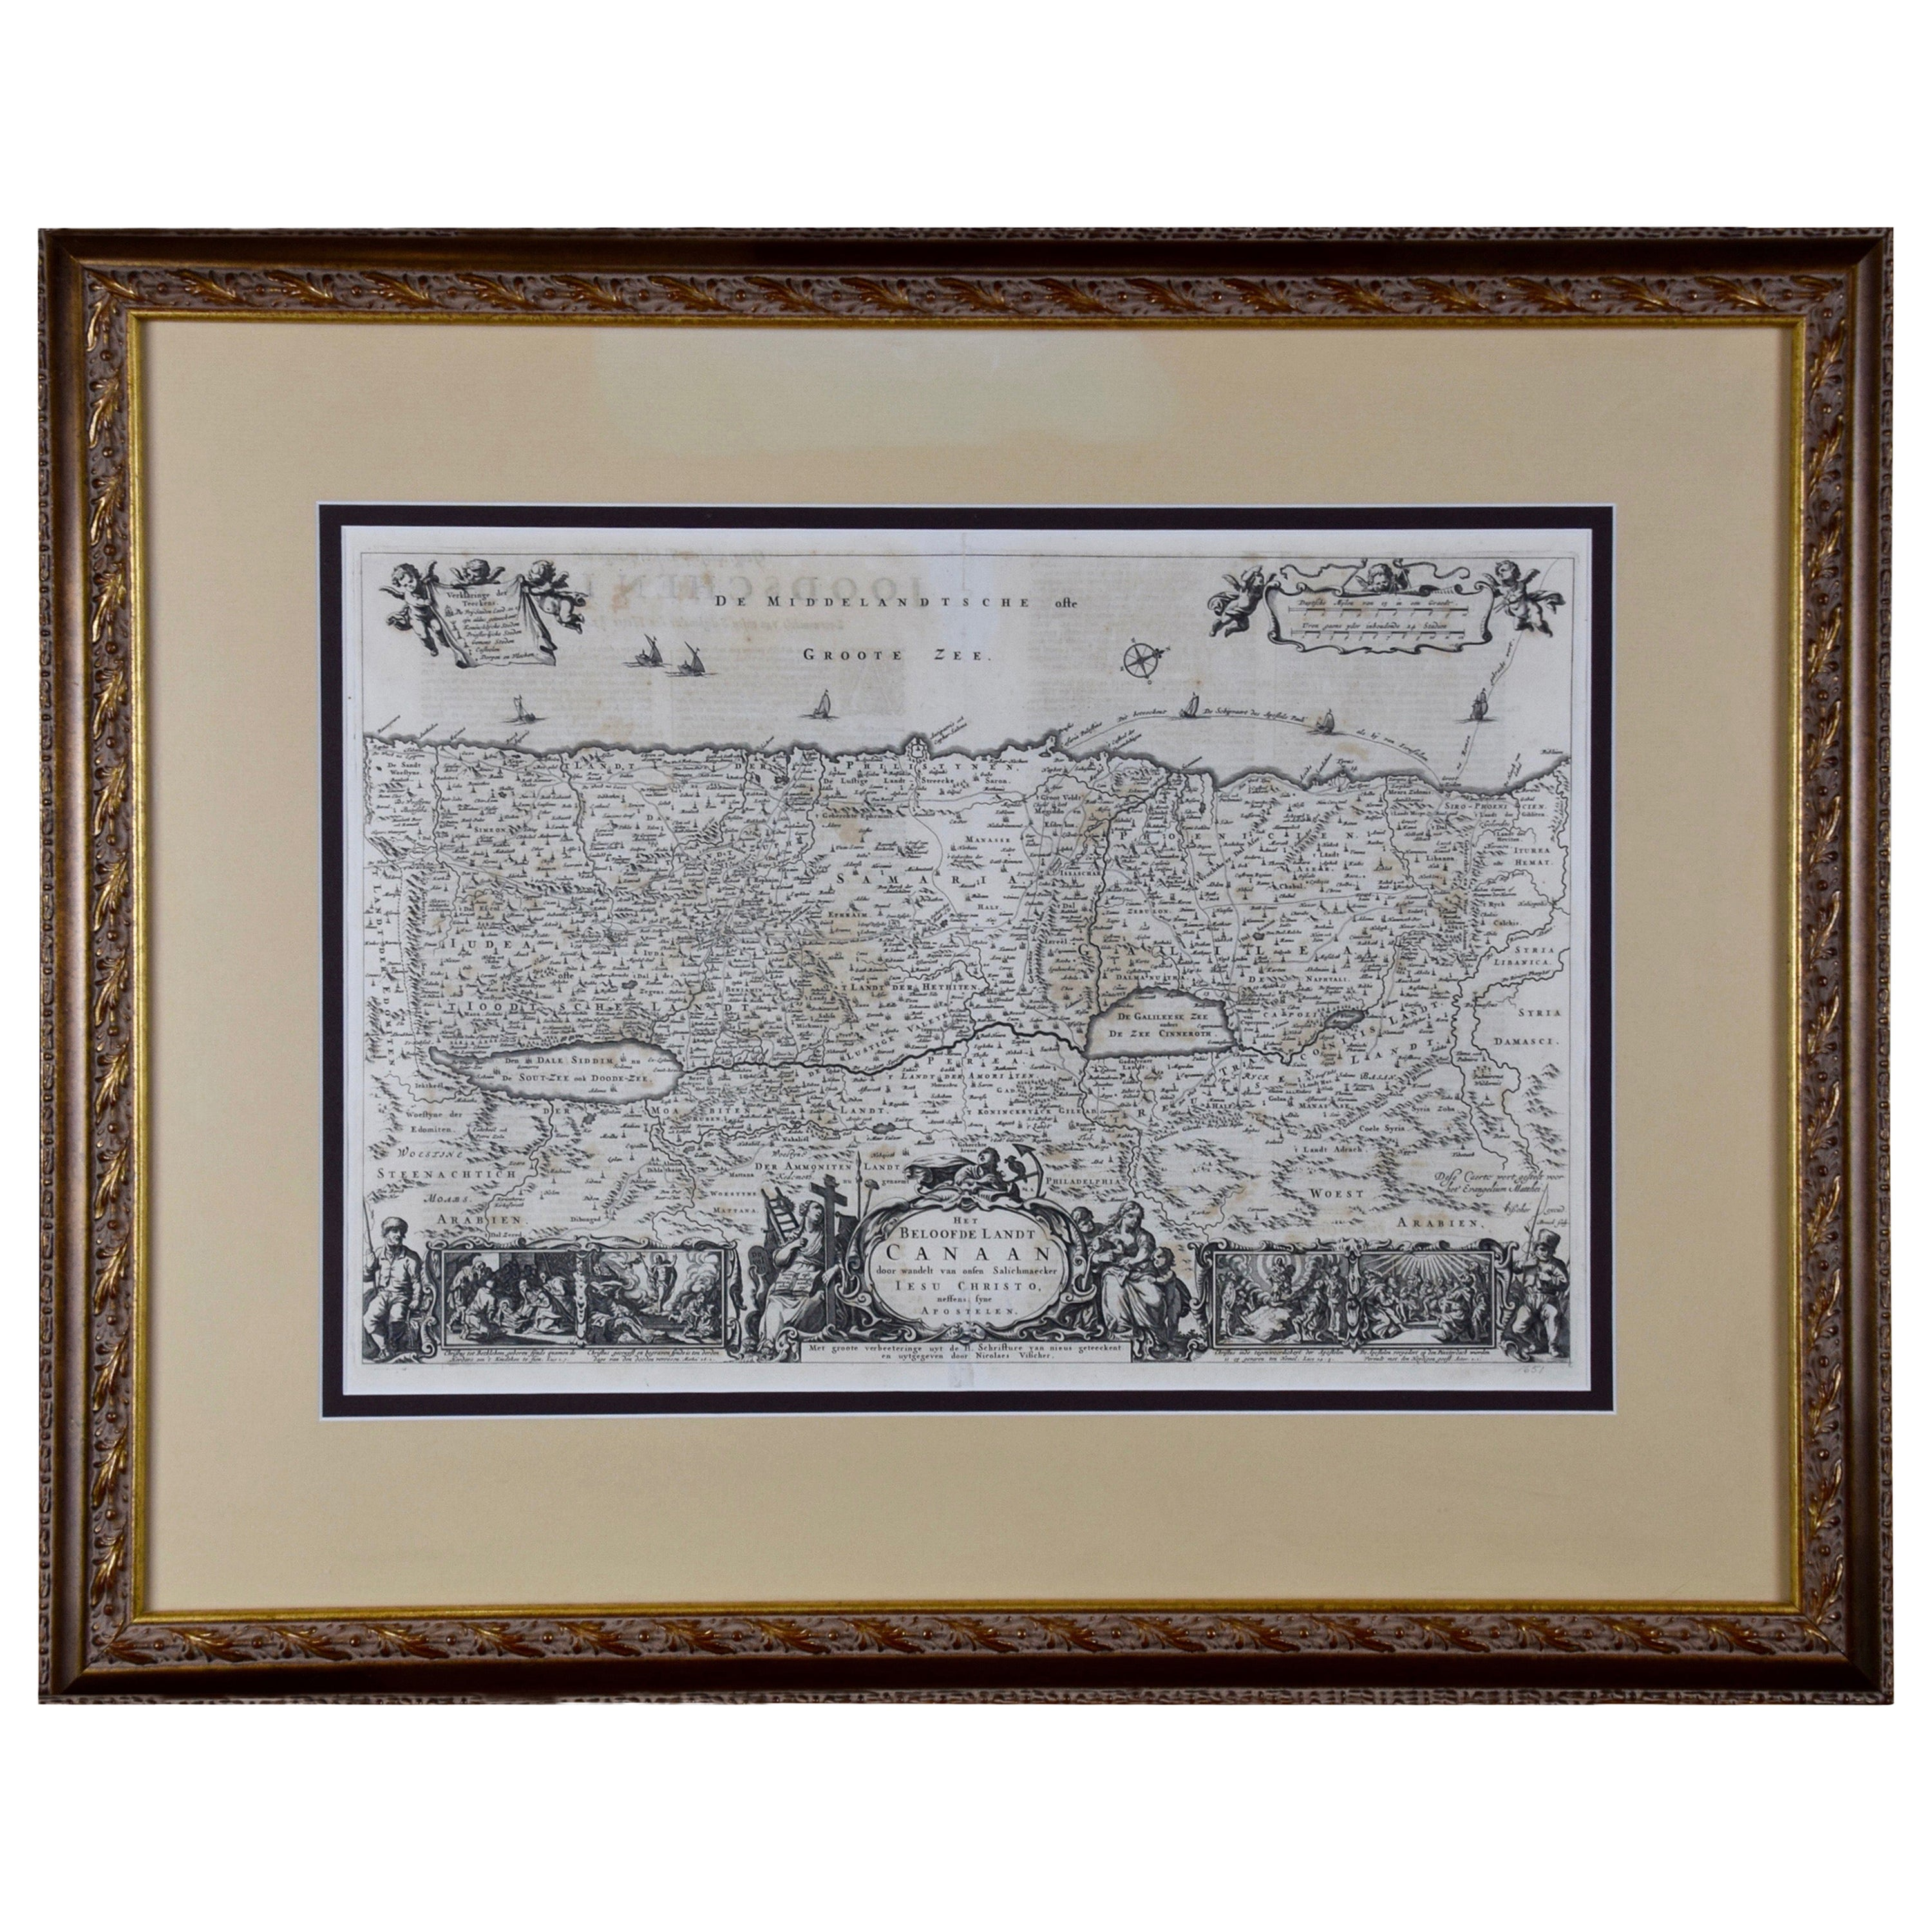 17th Century Dutch Map of the Holy Land at the Time of Jesus by Visscher